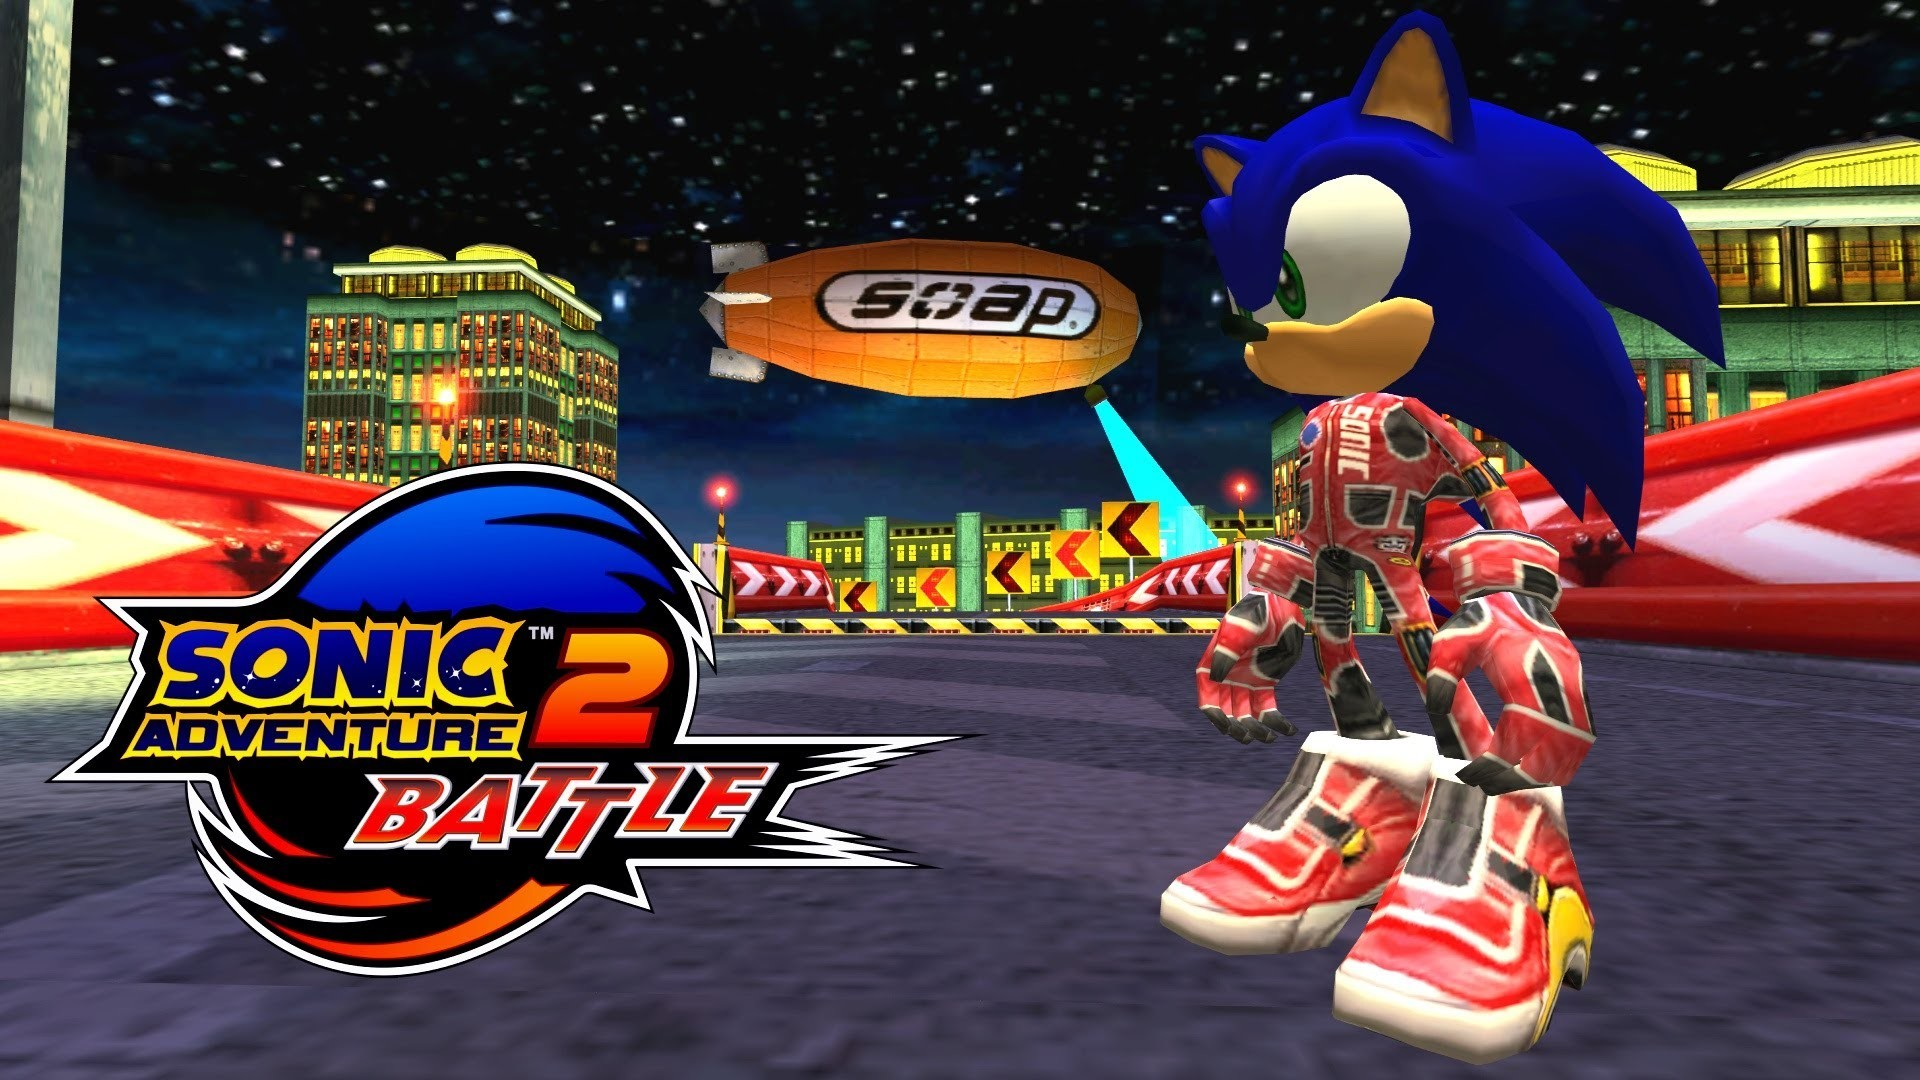 1920x1080 Sonic Adventure 2: Battle - Radical Highway - Sonic (Alt. costume) [REAL  Full HD, Widescreen] 60 FPS - YouTube